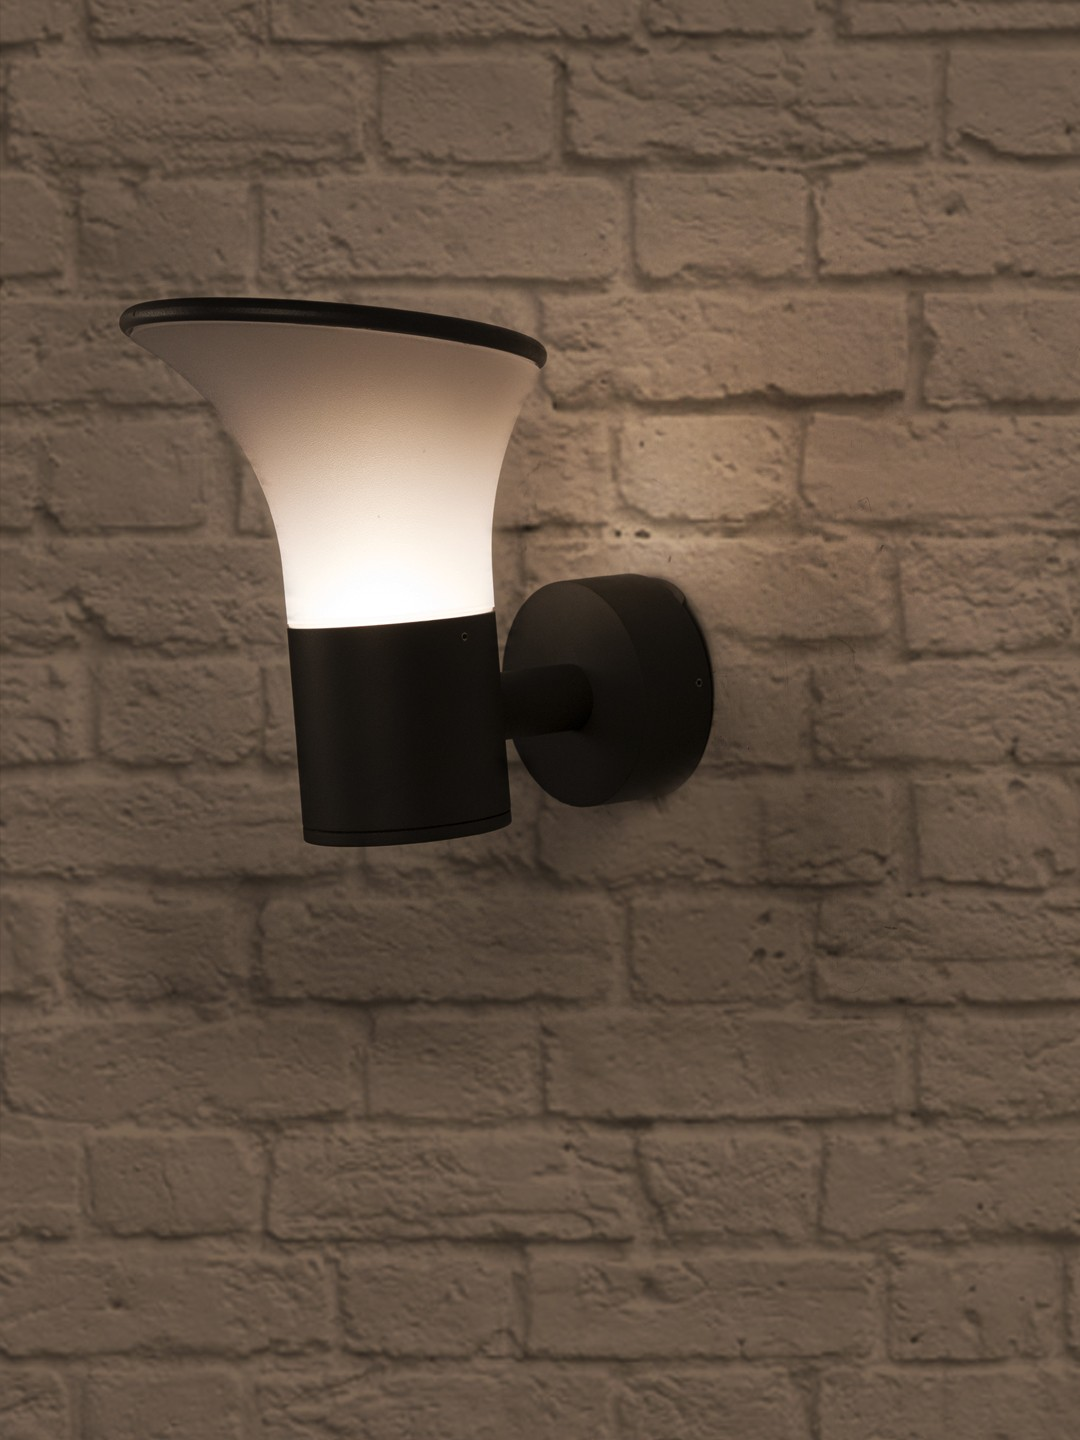 Contemporary Outdoor Wall Sconce in Aluminium and Bent Acrylic Shade